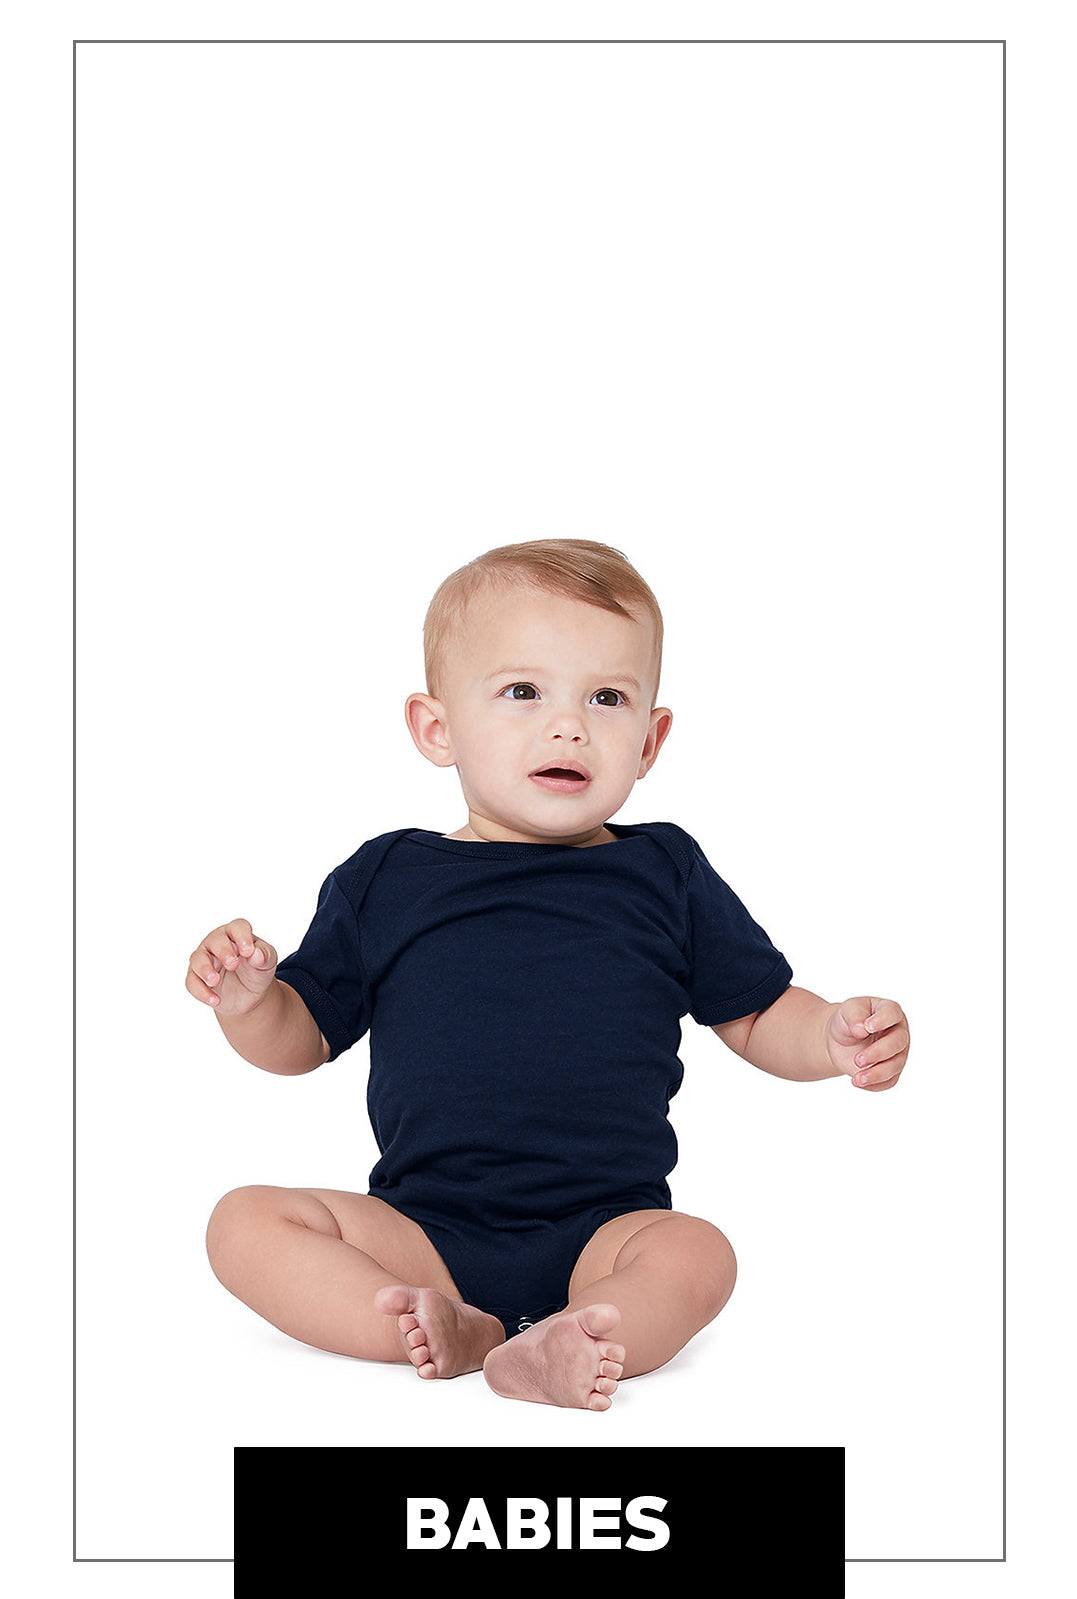 https://www.smartprintsink.com/collections/baby-garments